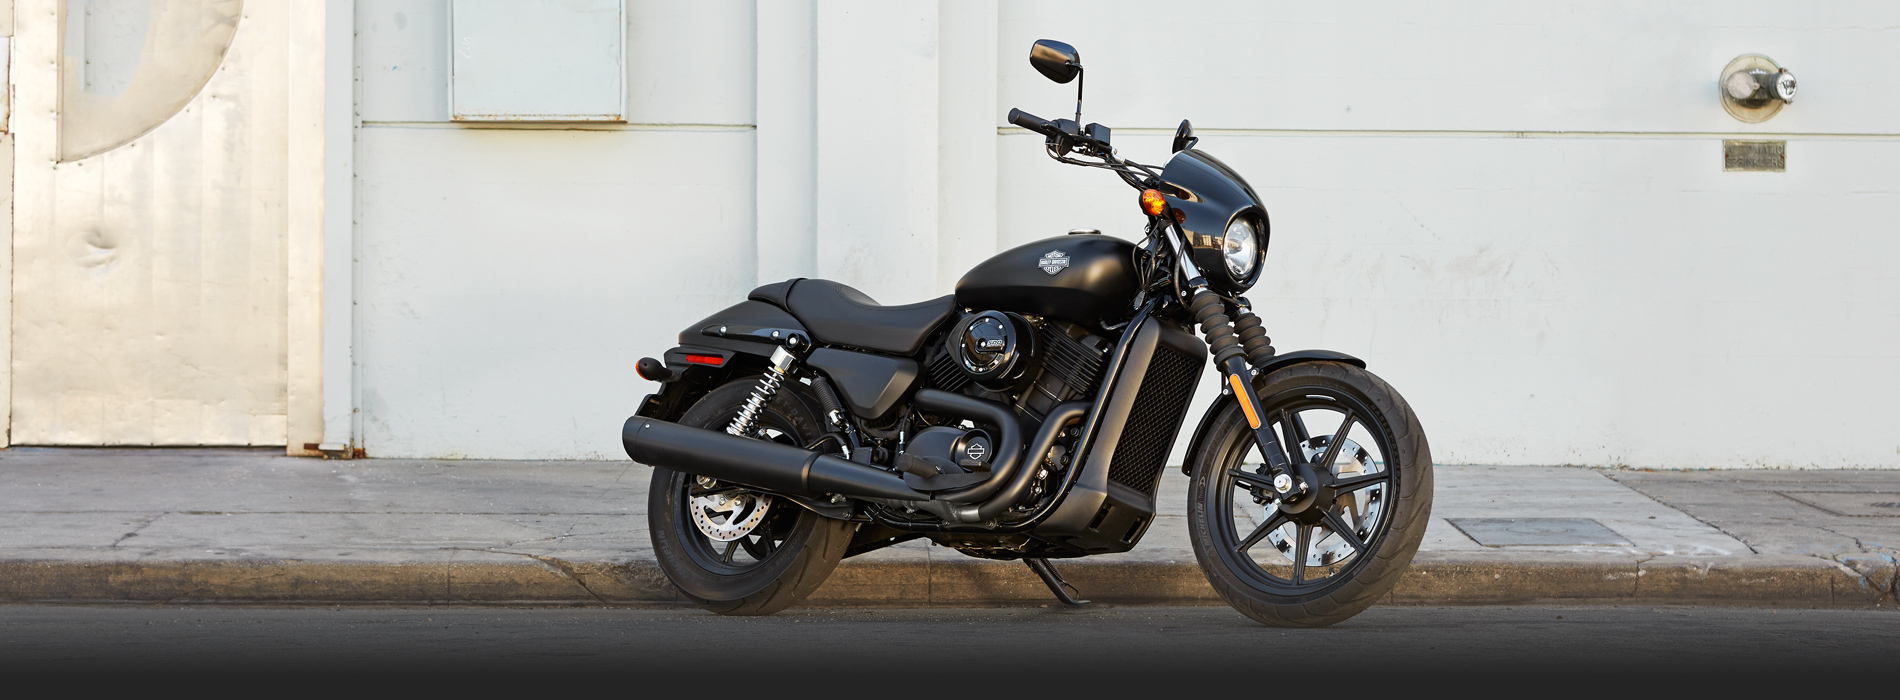 Harley-Davidson Street 500 Helps the MoCo Outsell Honda in Australia